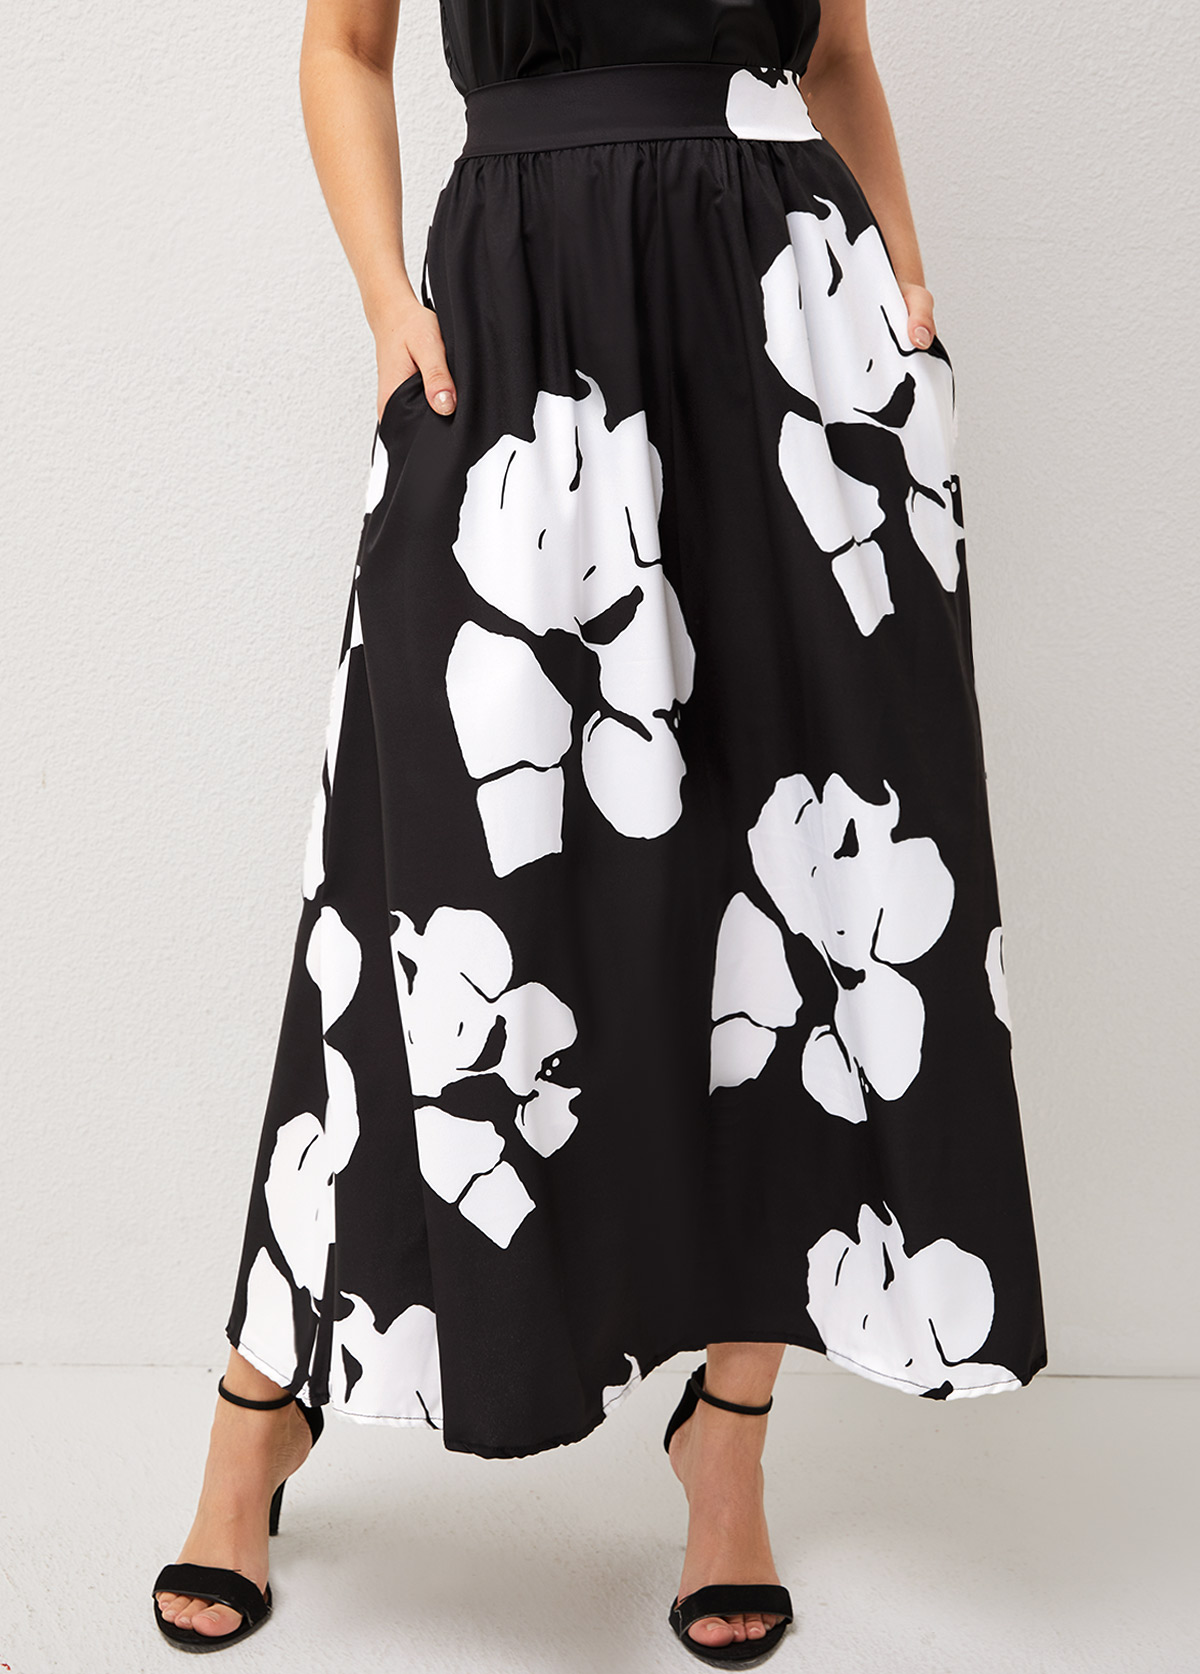 Double Side Pocket Floral Print High Waisted Skirt